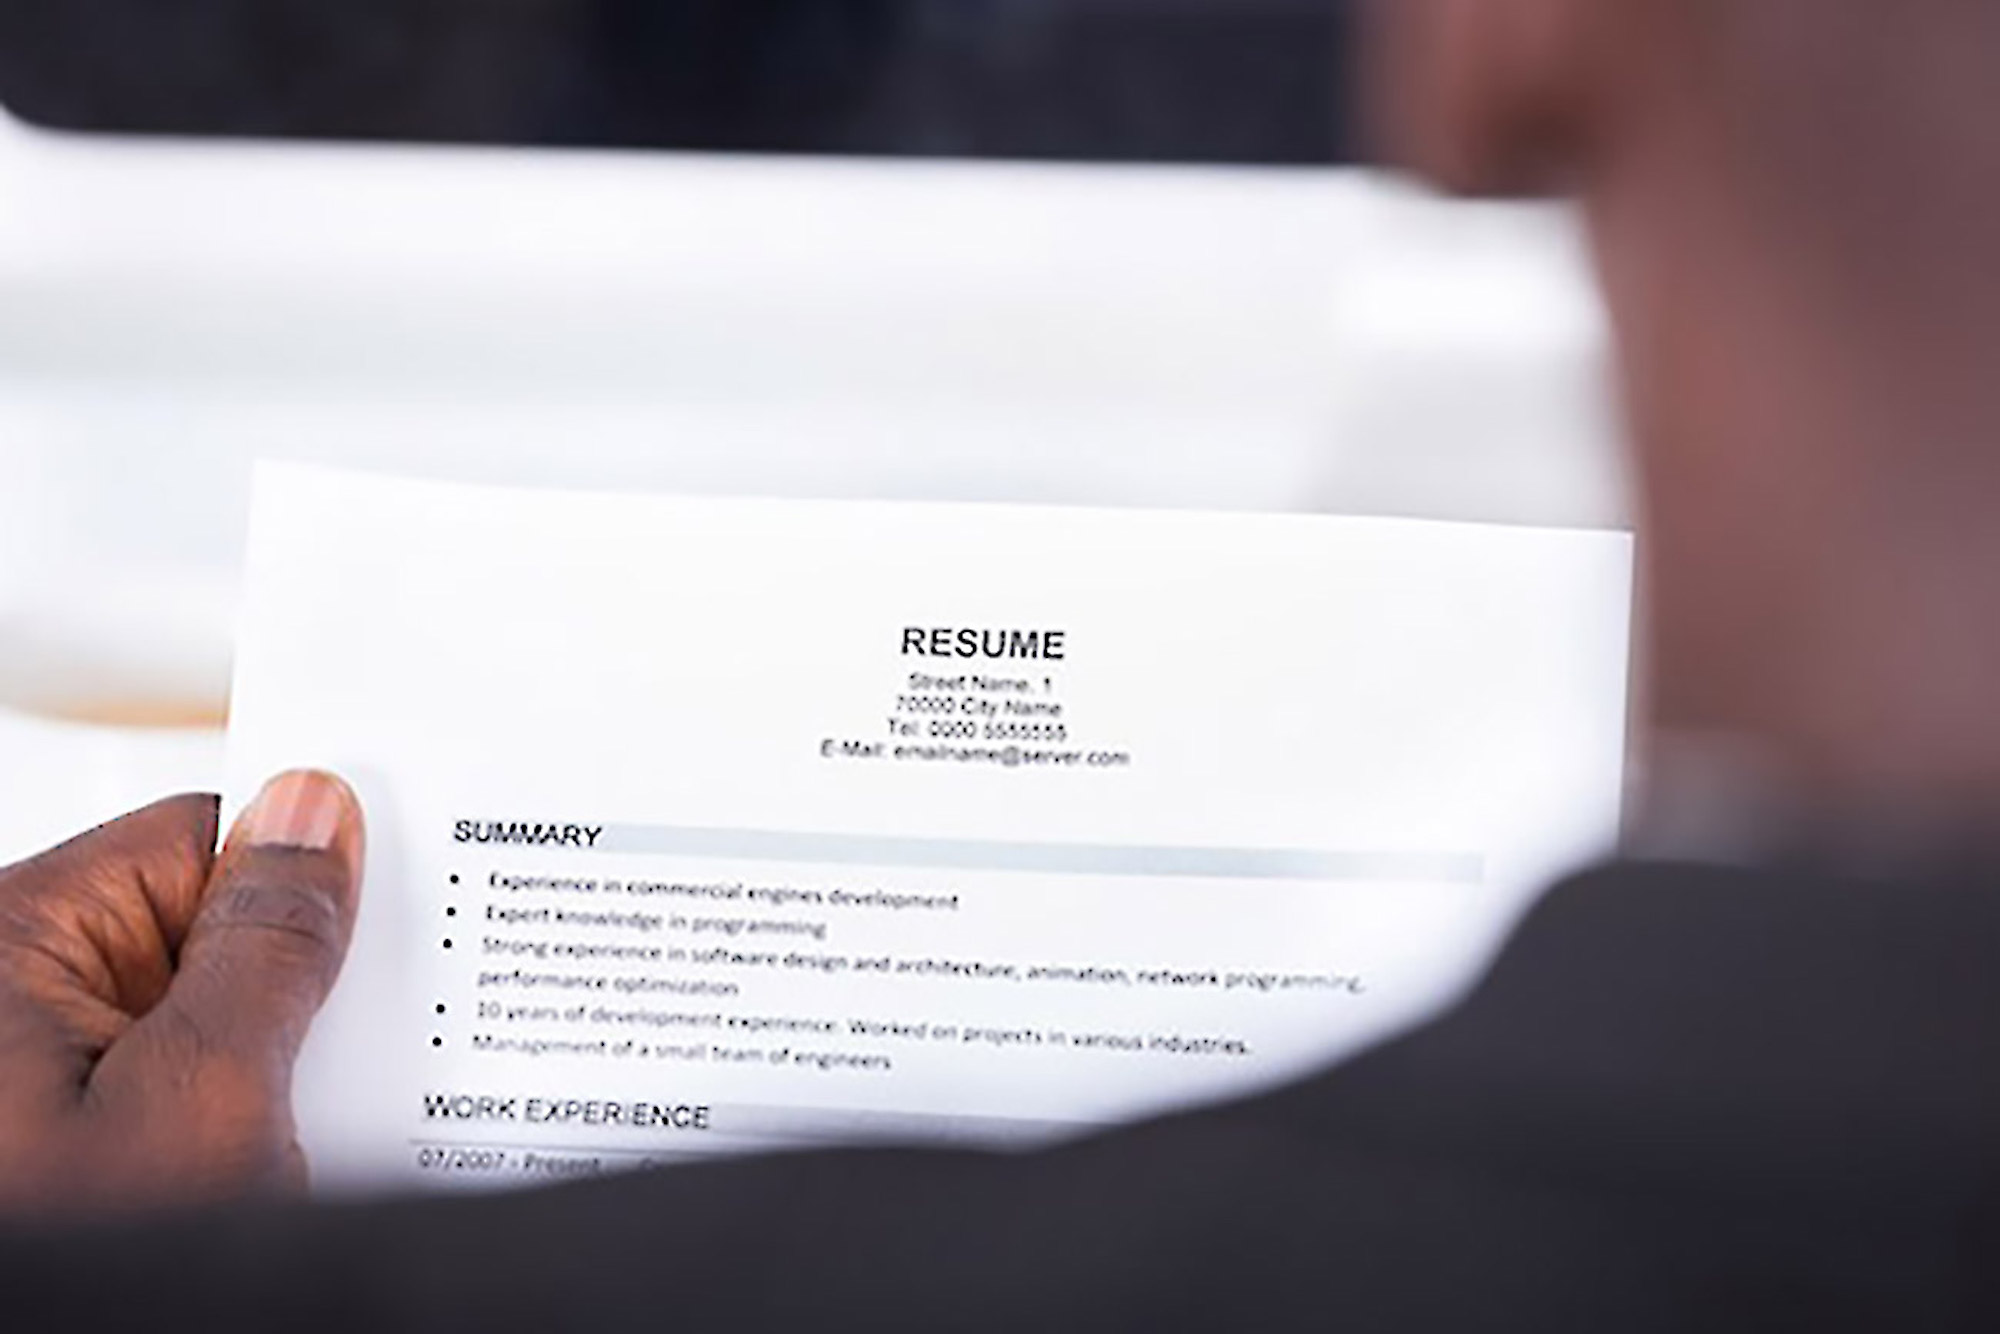 Resume Mistakes 9 Common Resume Mistakes Every Job Hunter Should Avoid